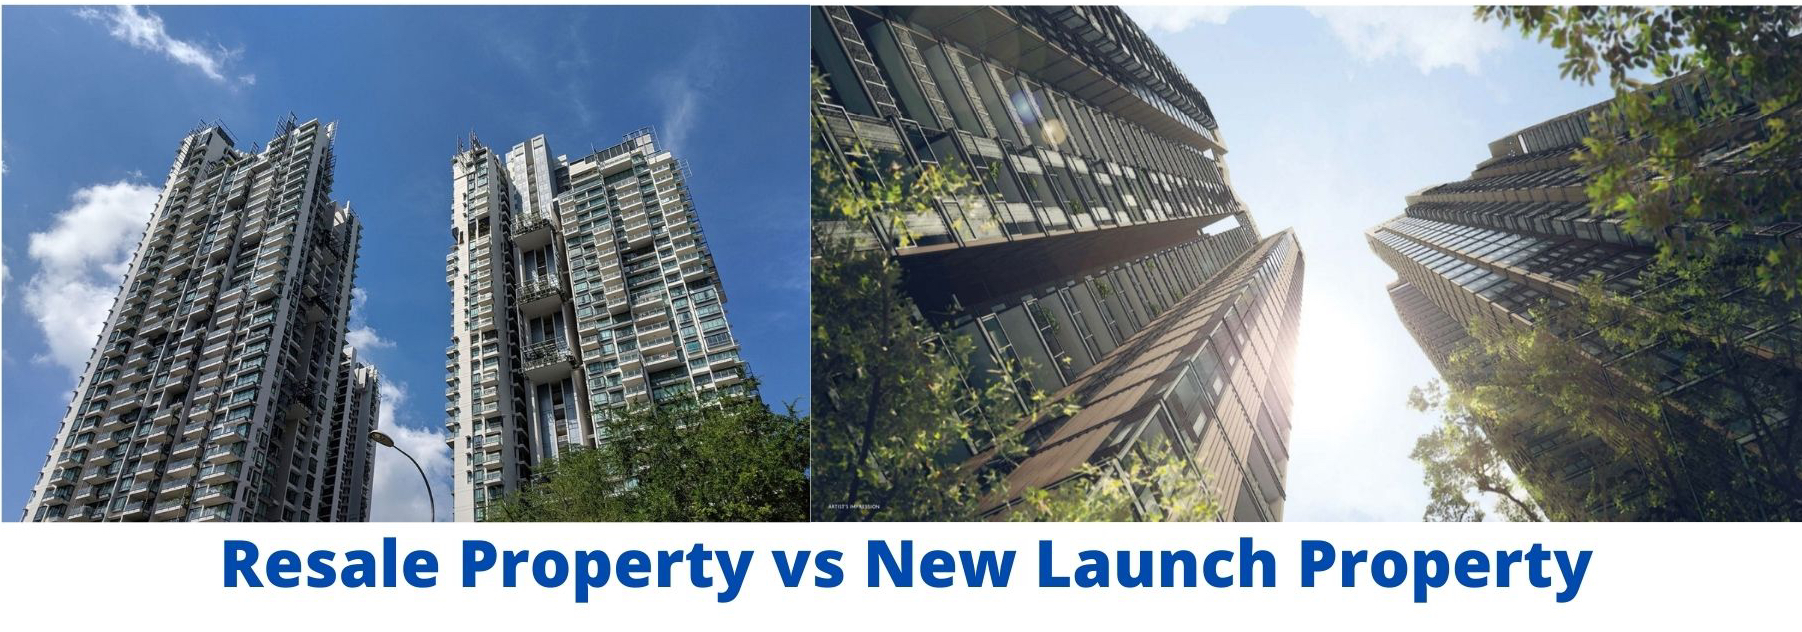 41B87EA7 C2F8 4F47 A90A 1F69E865C202 - Resale Property vs New Launch Property: Which is better?